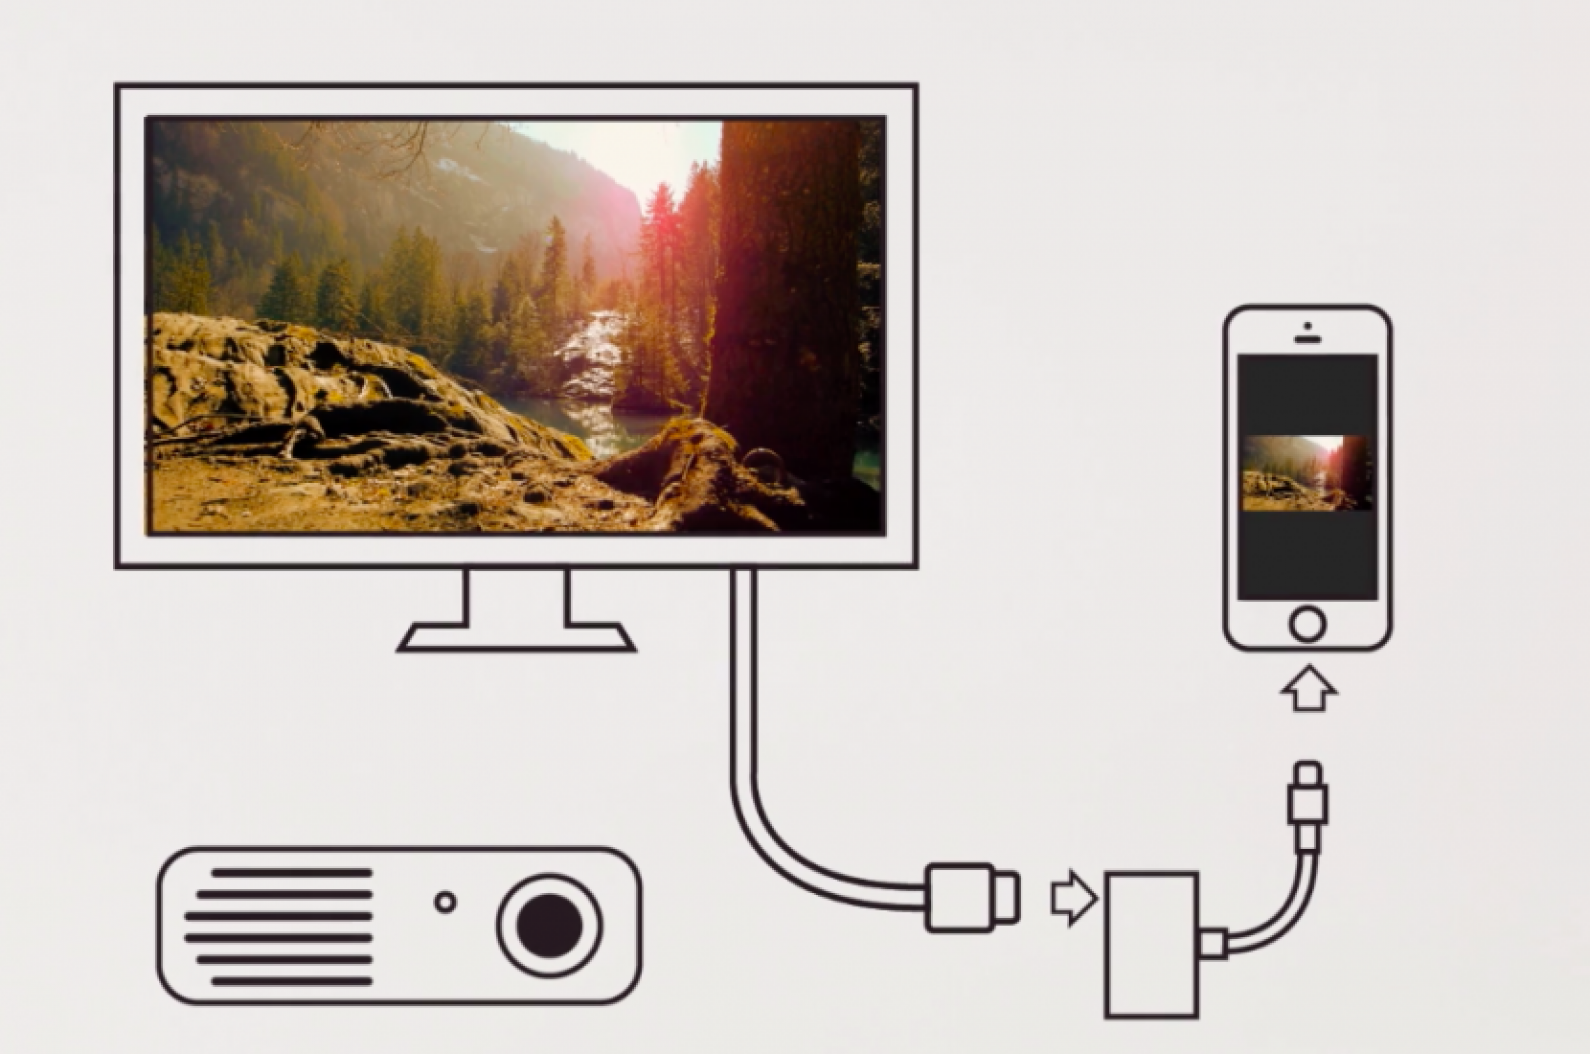 How to Connect Your iPhone or iPad to Your TV